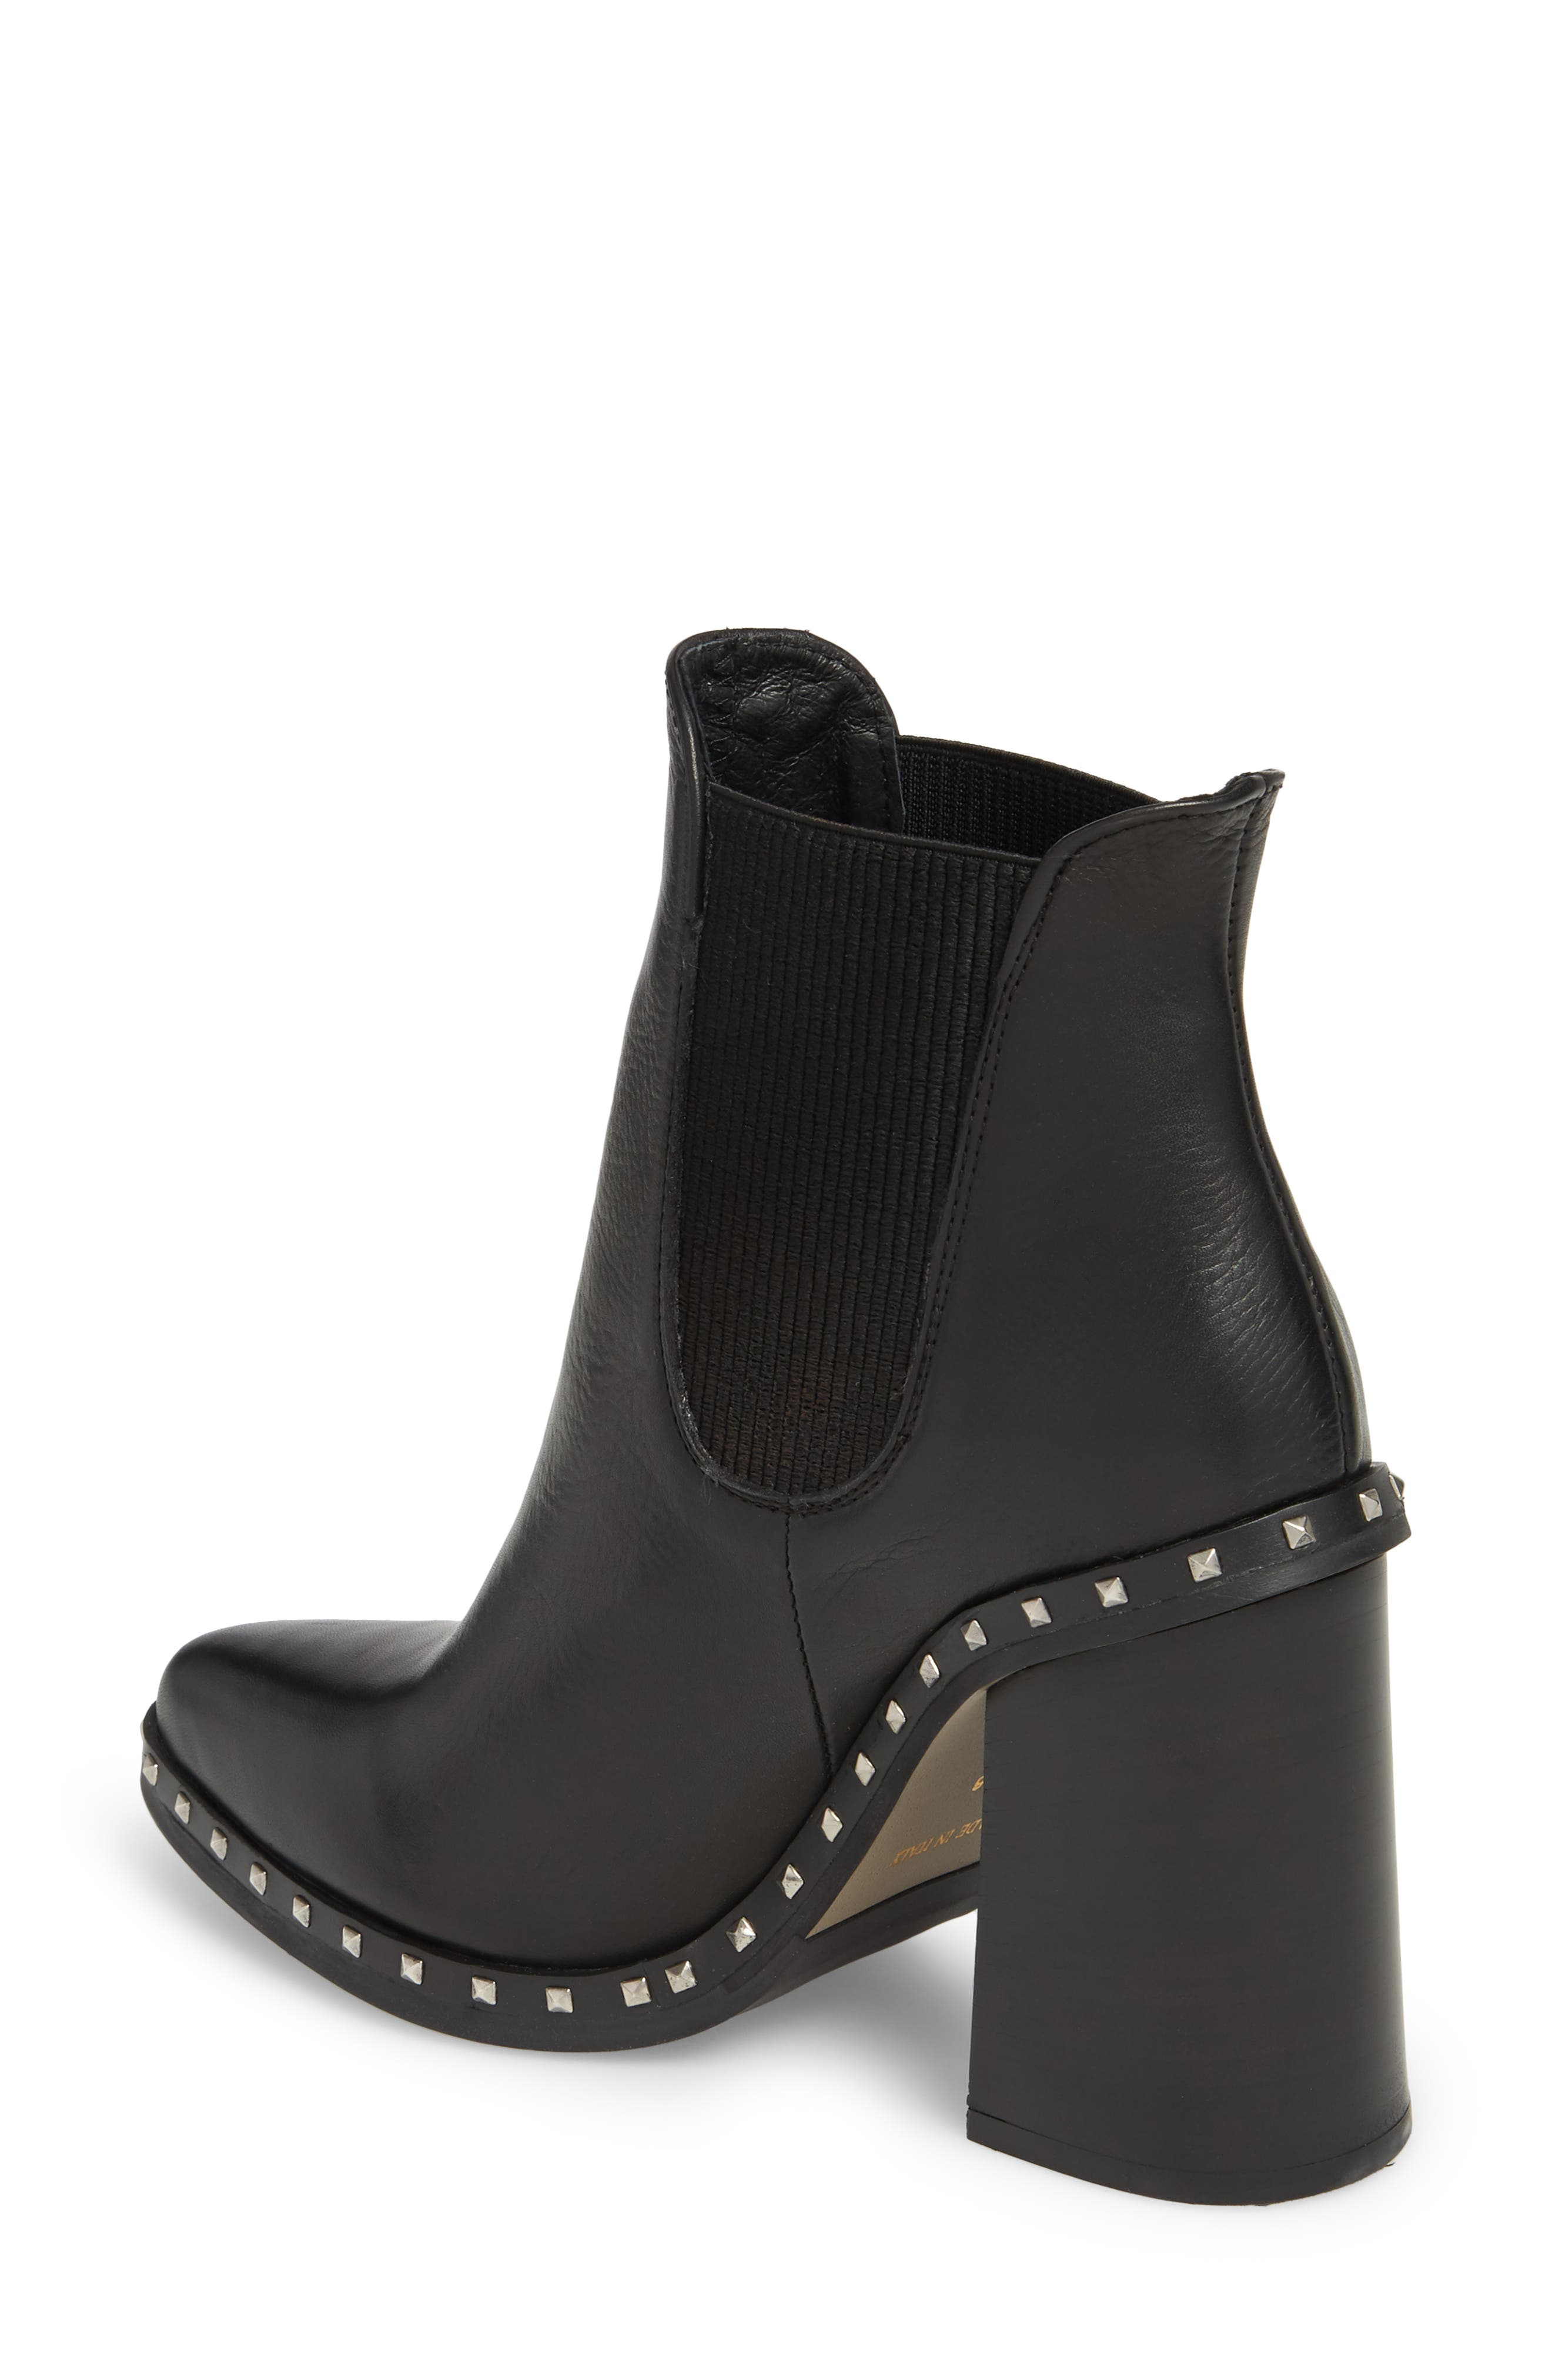 Scandal Studded Chelsea Bootie,                             Alternate thumbnail 2, color,                             001